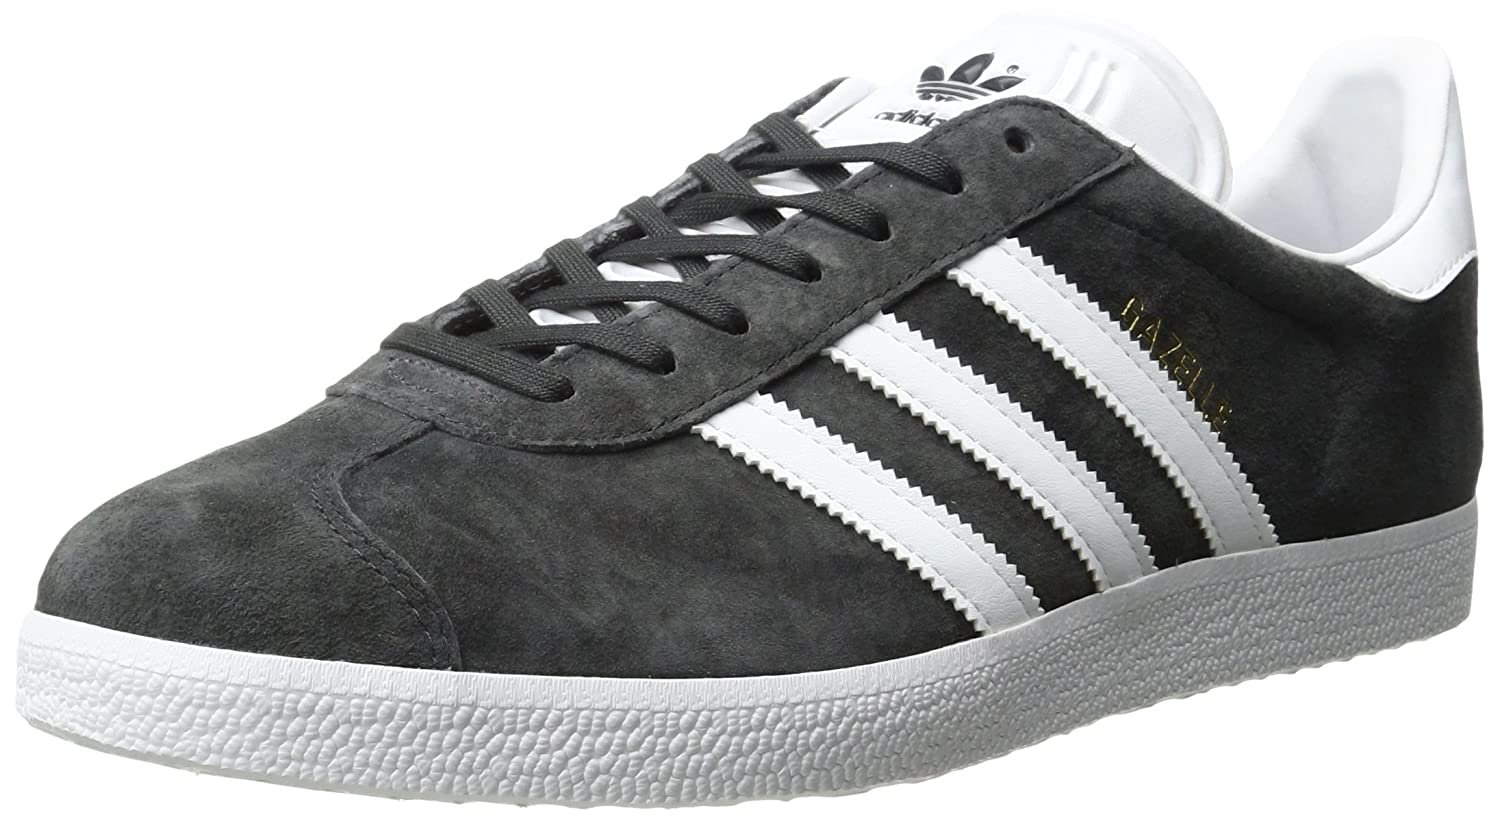 adidas Men's Gazelle Casual Sneakers B01HLJGT02 12 M US|Dark Grey Heather/White/Metallic/Gold